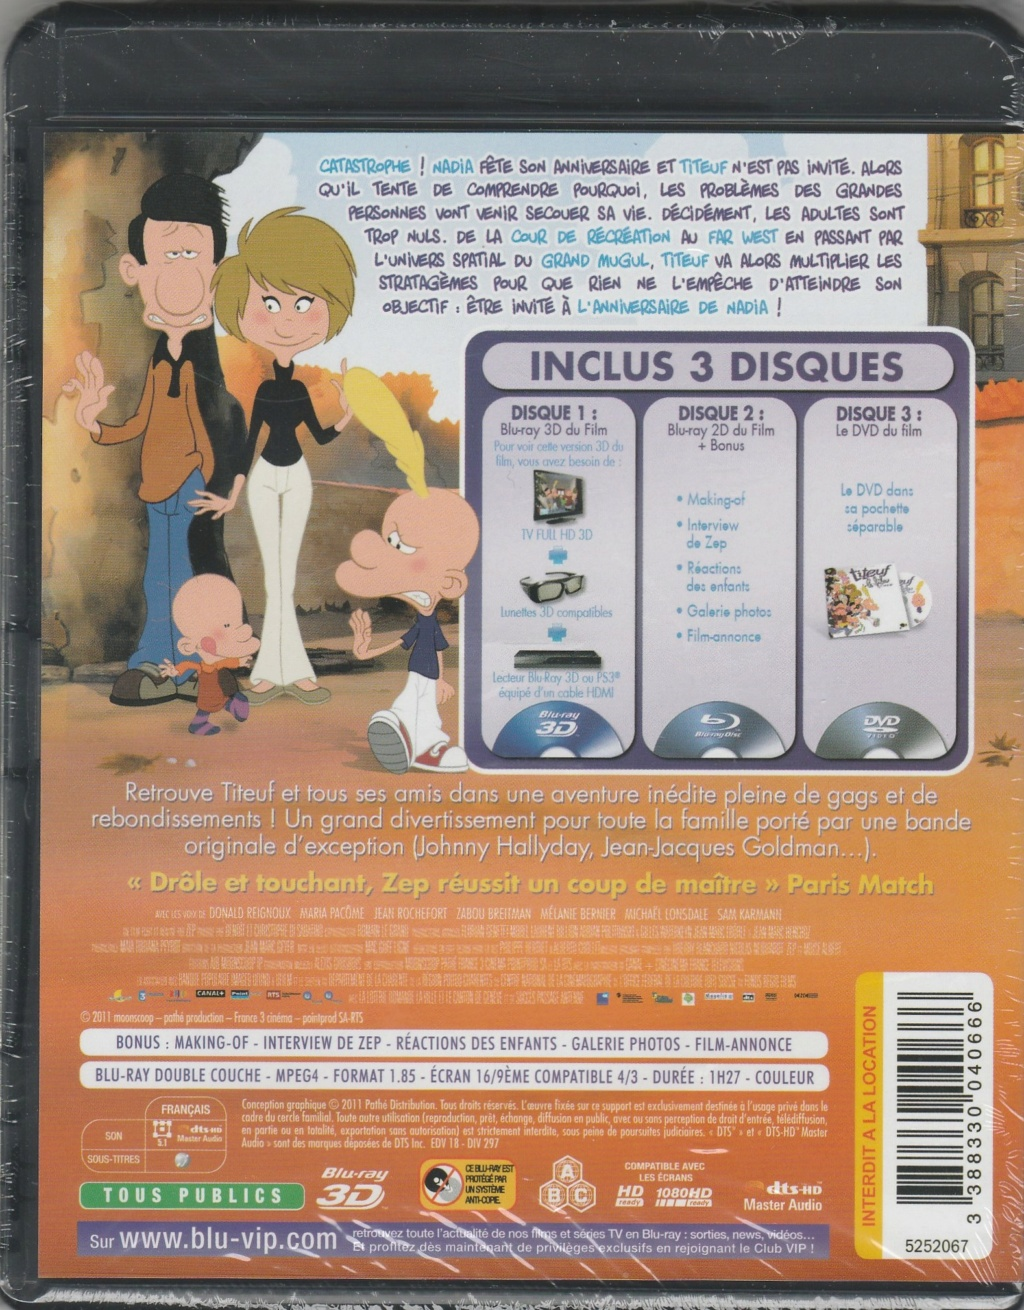 JAQUETTES BLU-RAY DISC ( CONCERTS, FILMS ) - Page 2 Img_2244